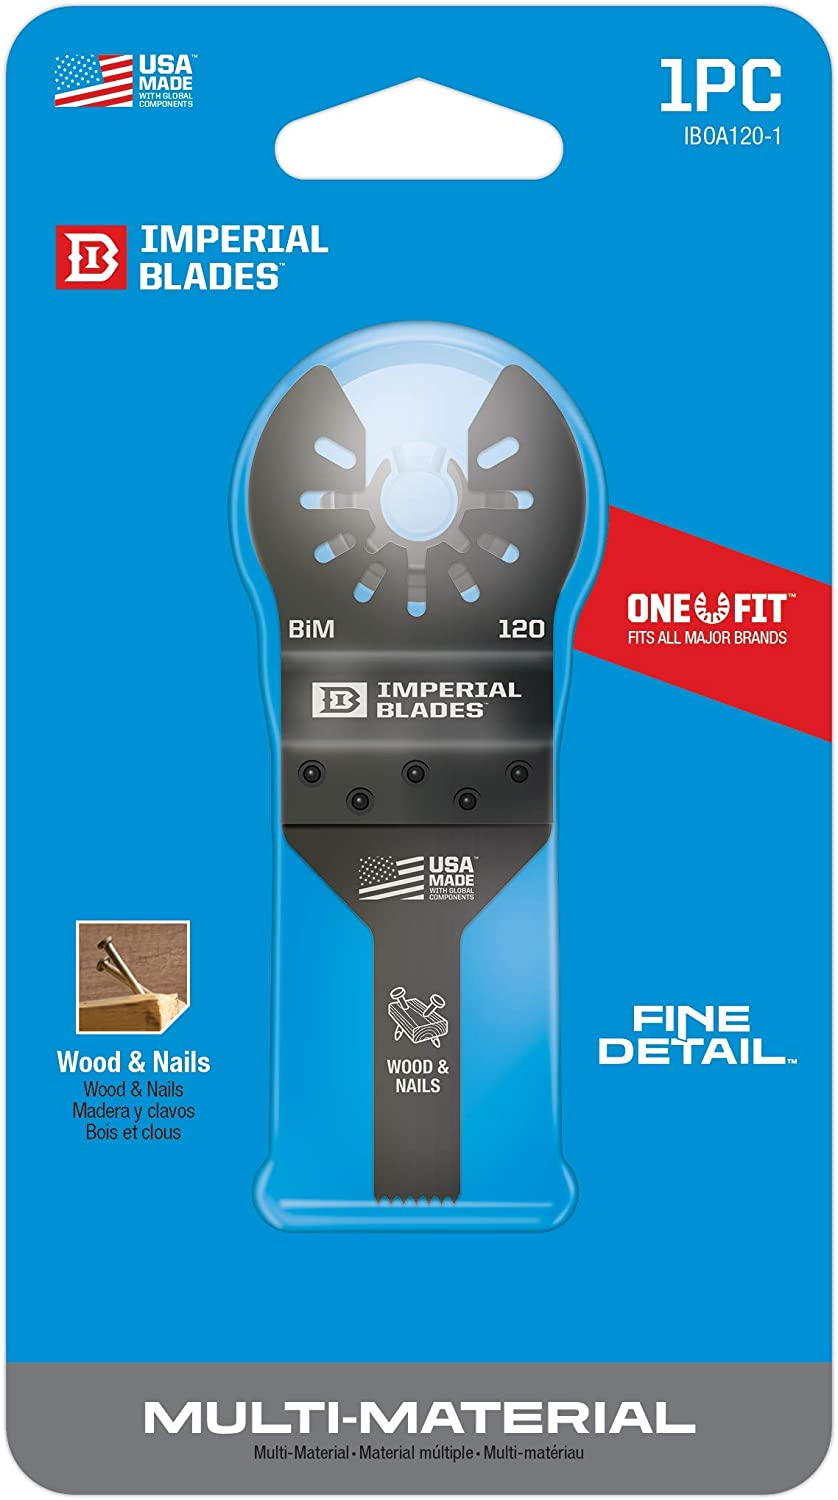 IMPERIAL IBOA120-1 ONE FIT OSCILLATING TOOL WOOD HCS BLADE